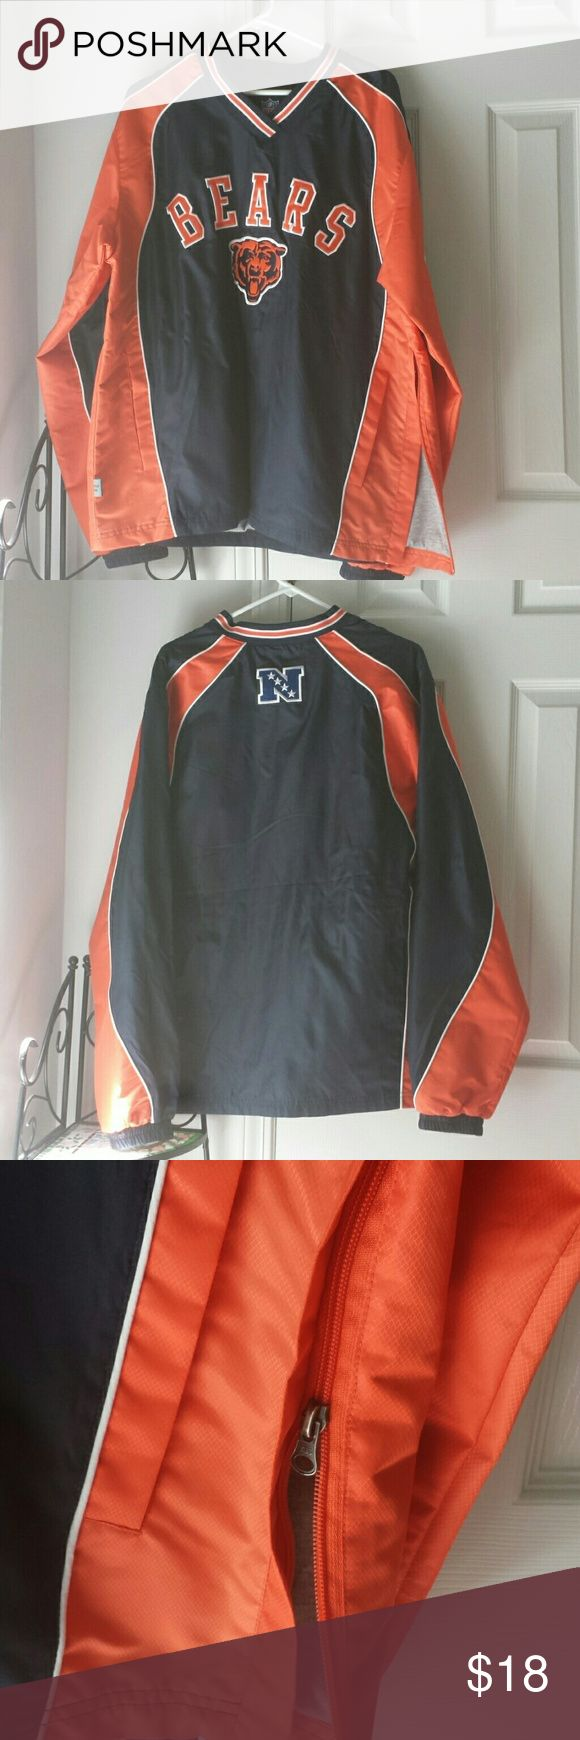 Chicago Bears Pullover Windbreaker Gently worn  Brand:NFL Size:Medium Blue and Orange pullover with gray lining and side zipper Jackets & Coats Windbreakers